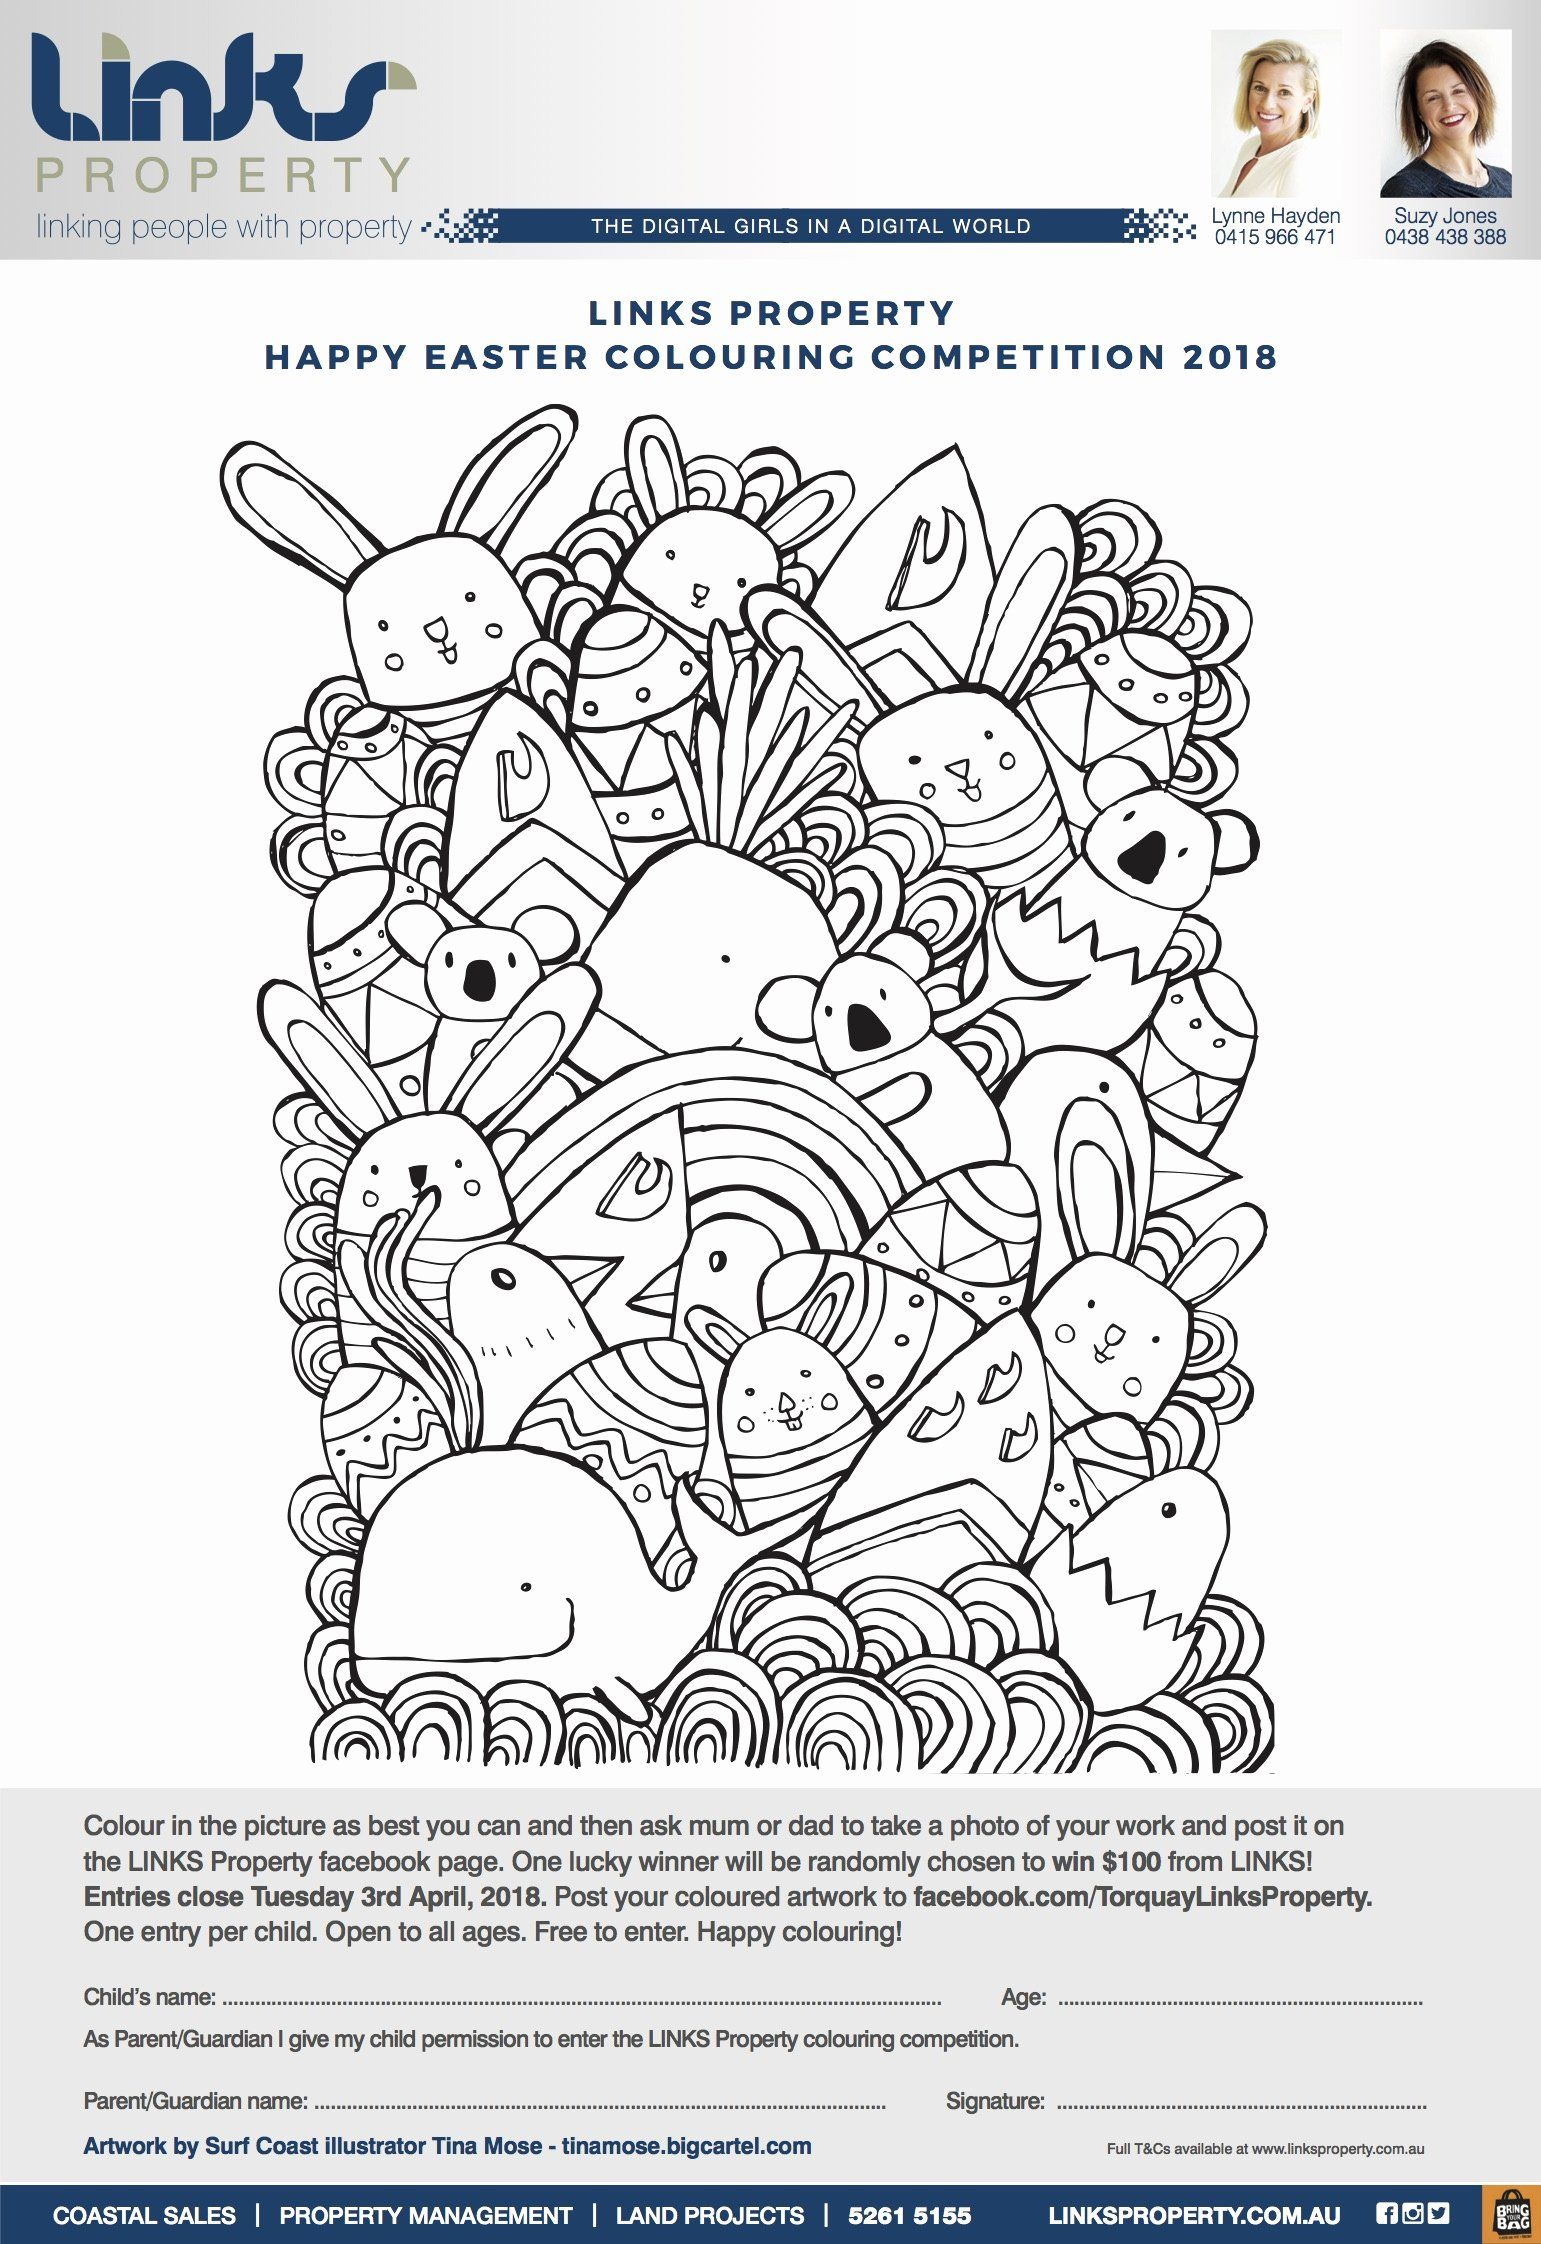 Turn Photo Into Coloring Page Free Online Fresh Turn Into Coloring Page Fr Princess Coloring Pages Disney Princess Coloring Pages Kids Printable Coloring Pages